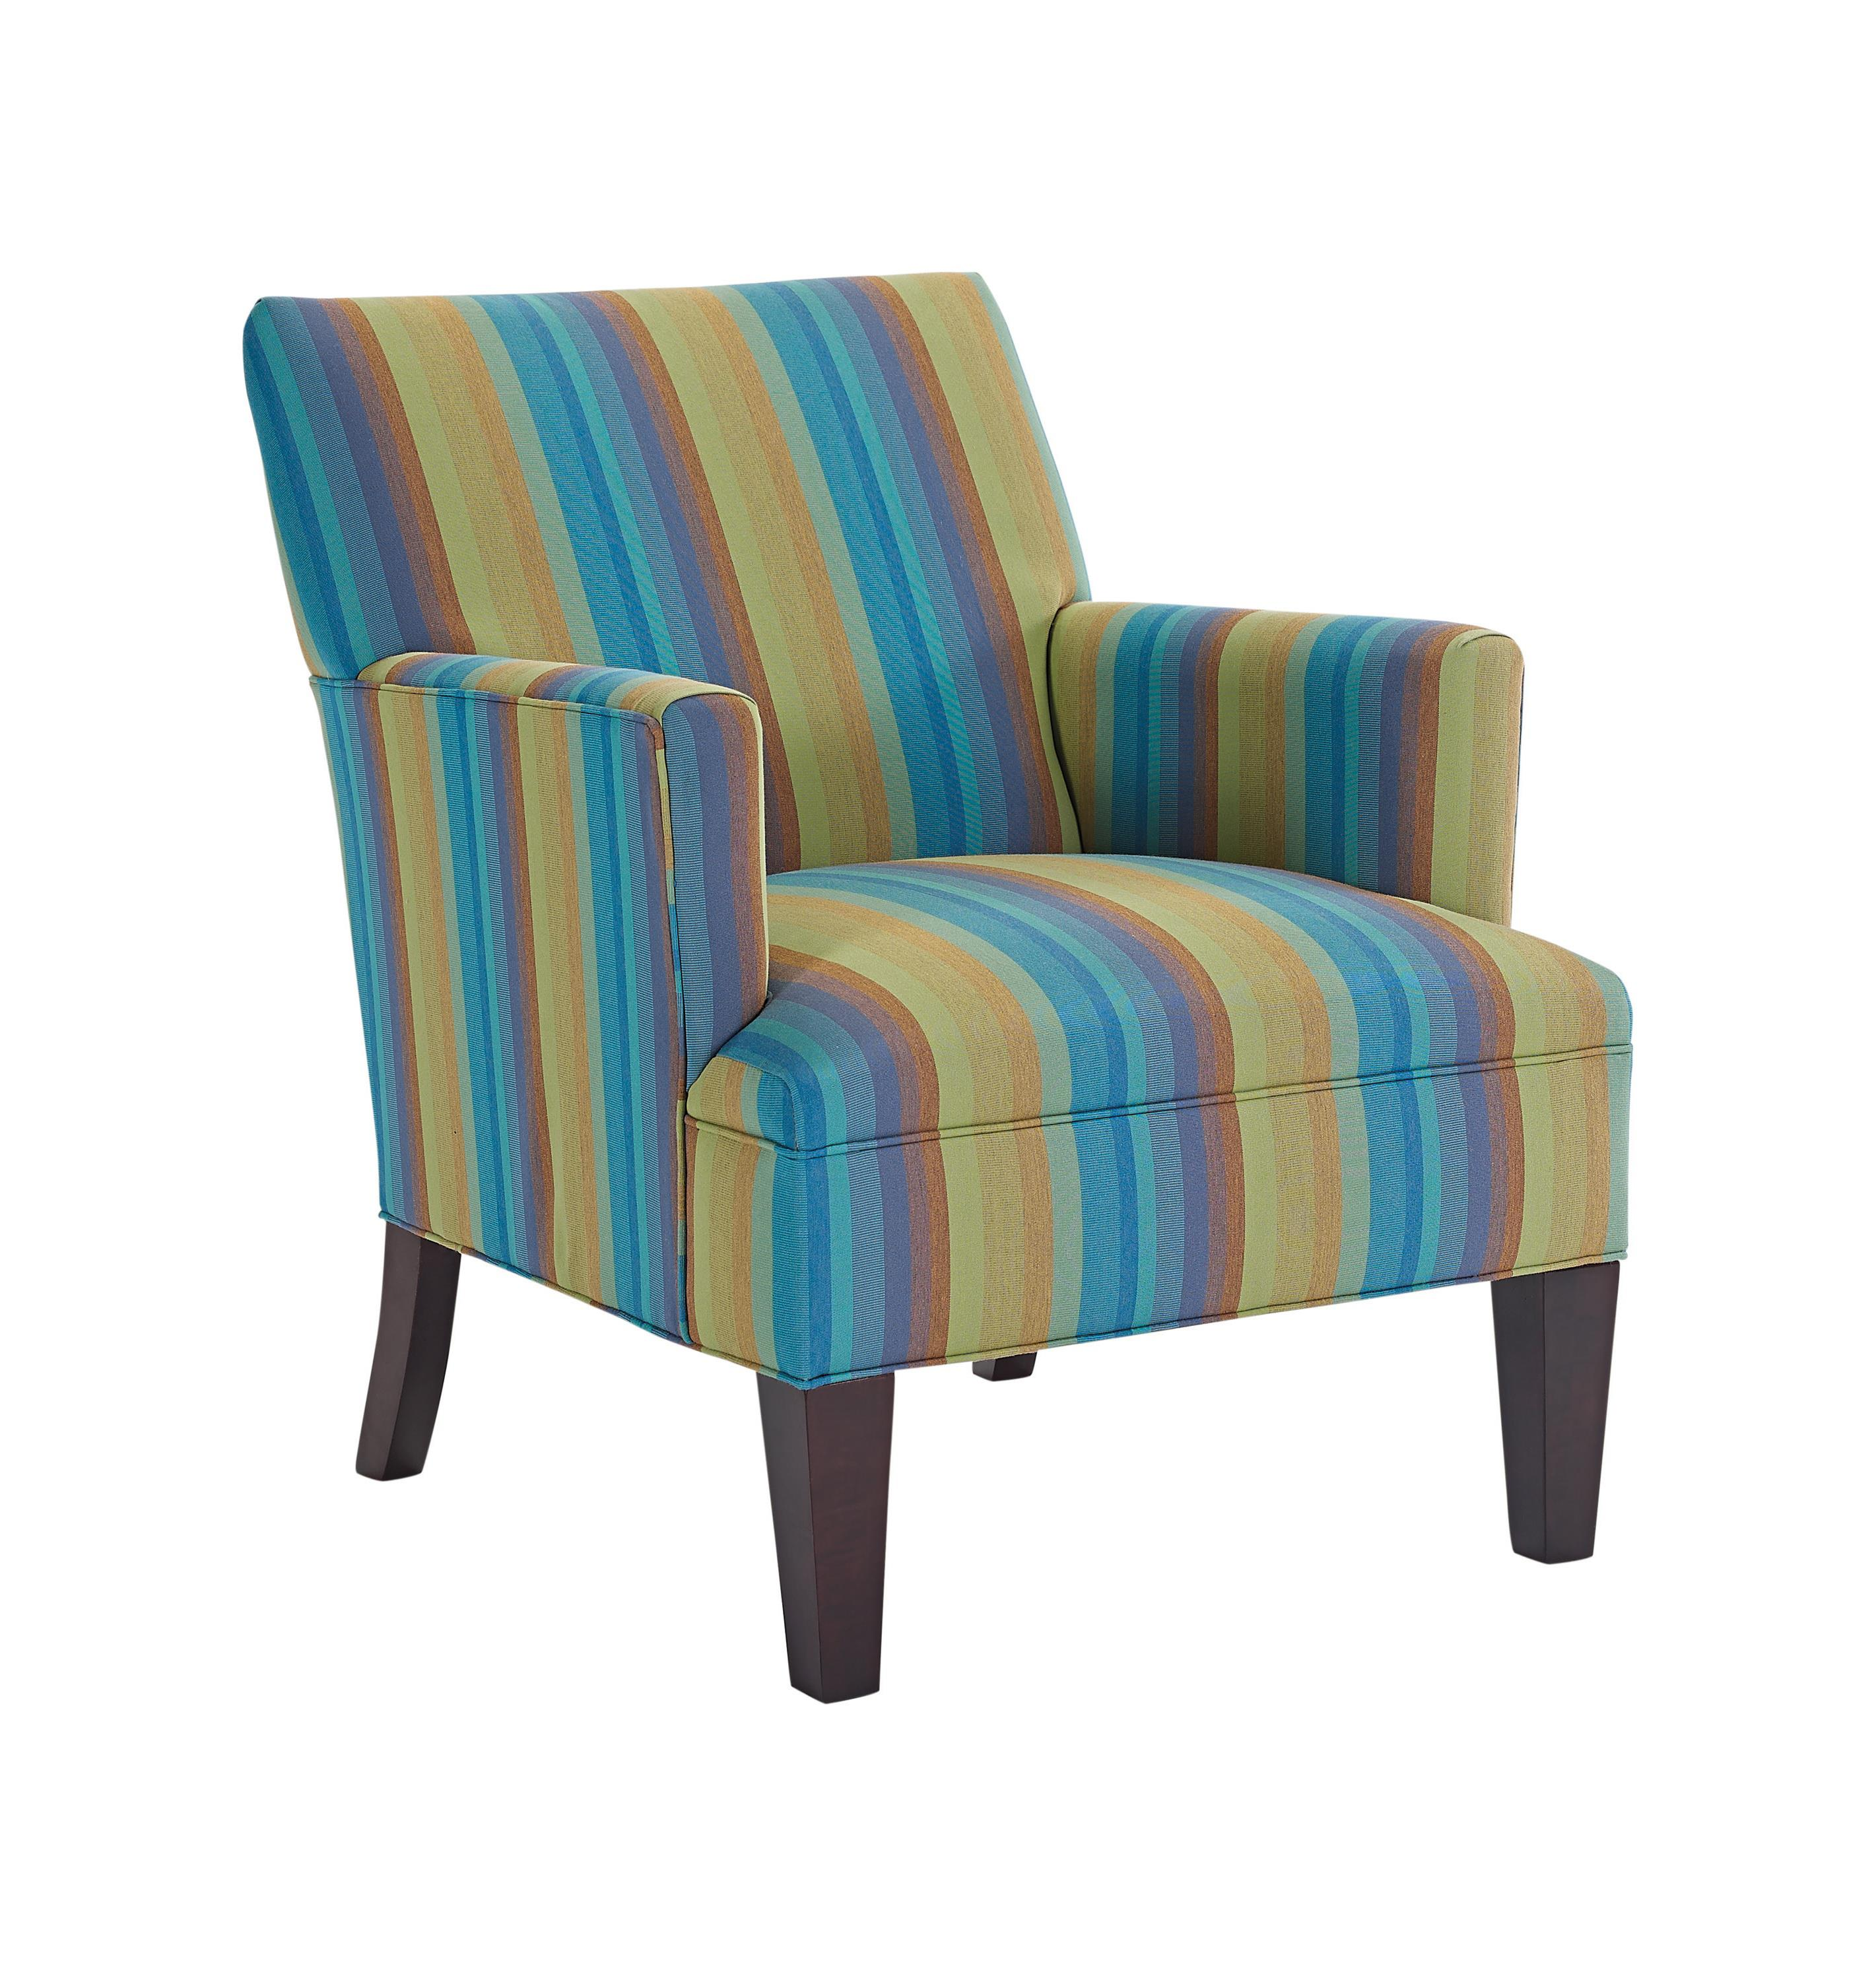 Broyhill Furniture S9047 Chair - Item Number: S9047-0-56096-0000